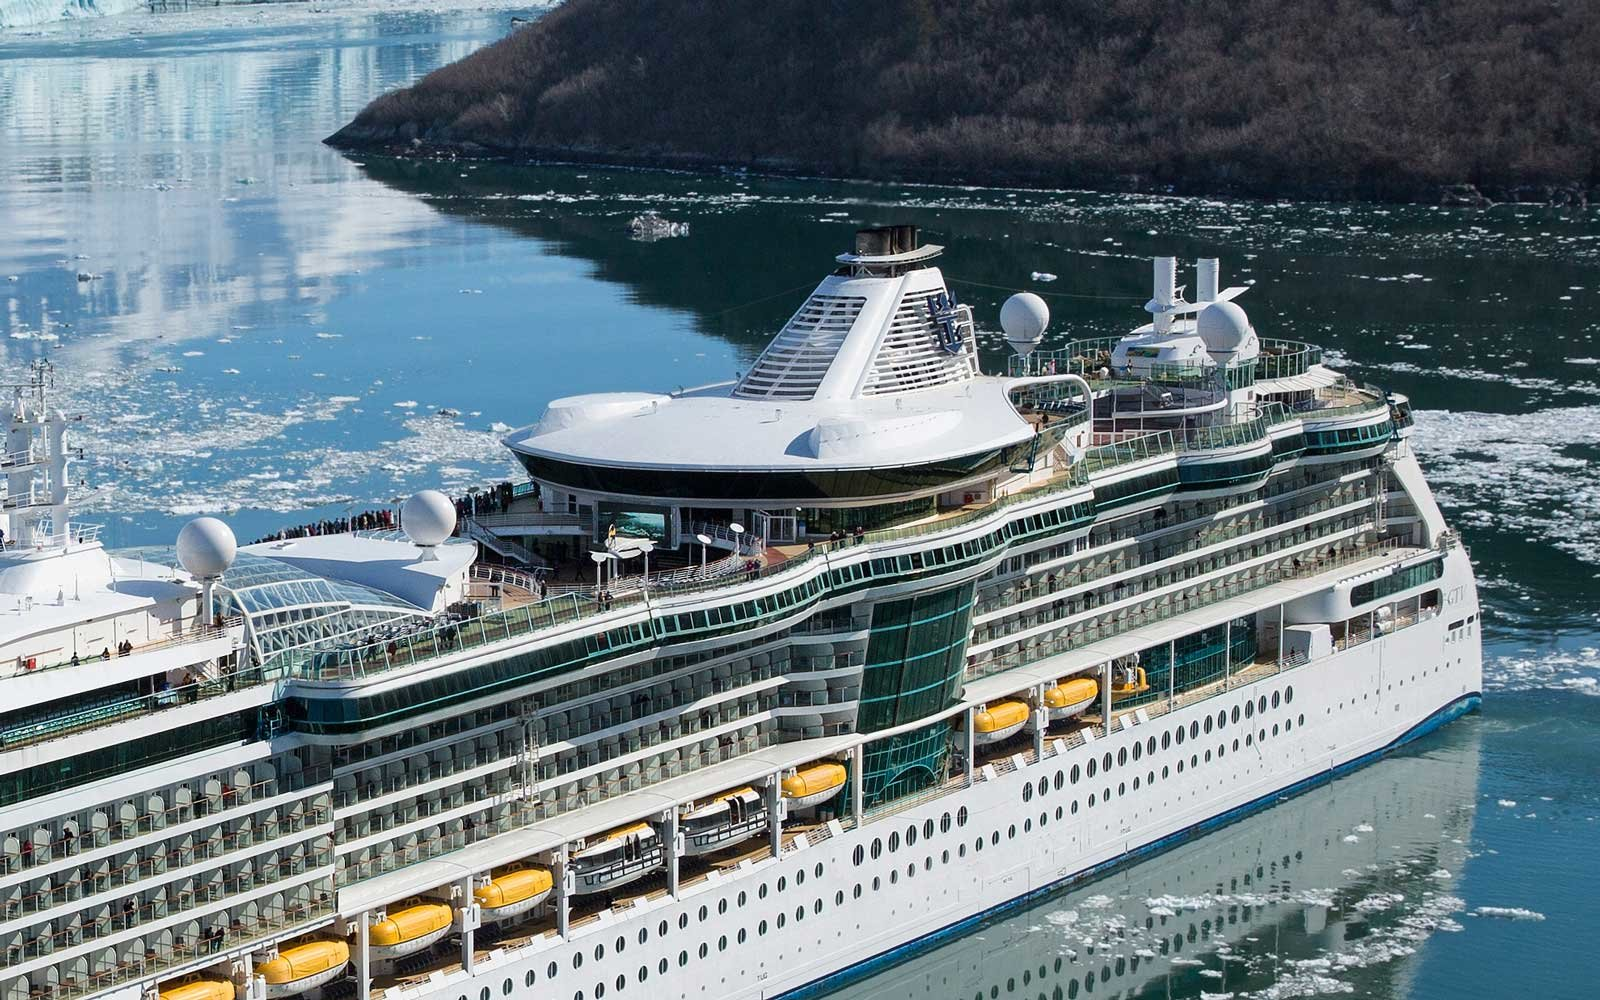 Five Things to Know About Royal Caribbean International's Jewel of the Seas Cruise Ship